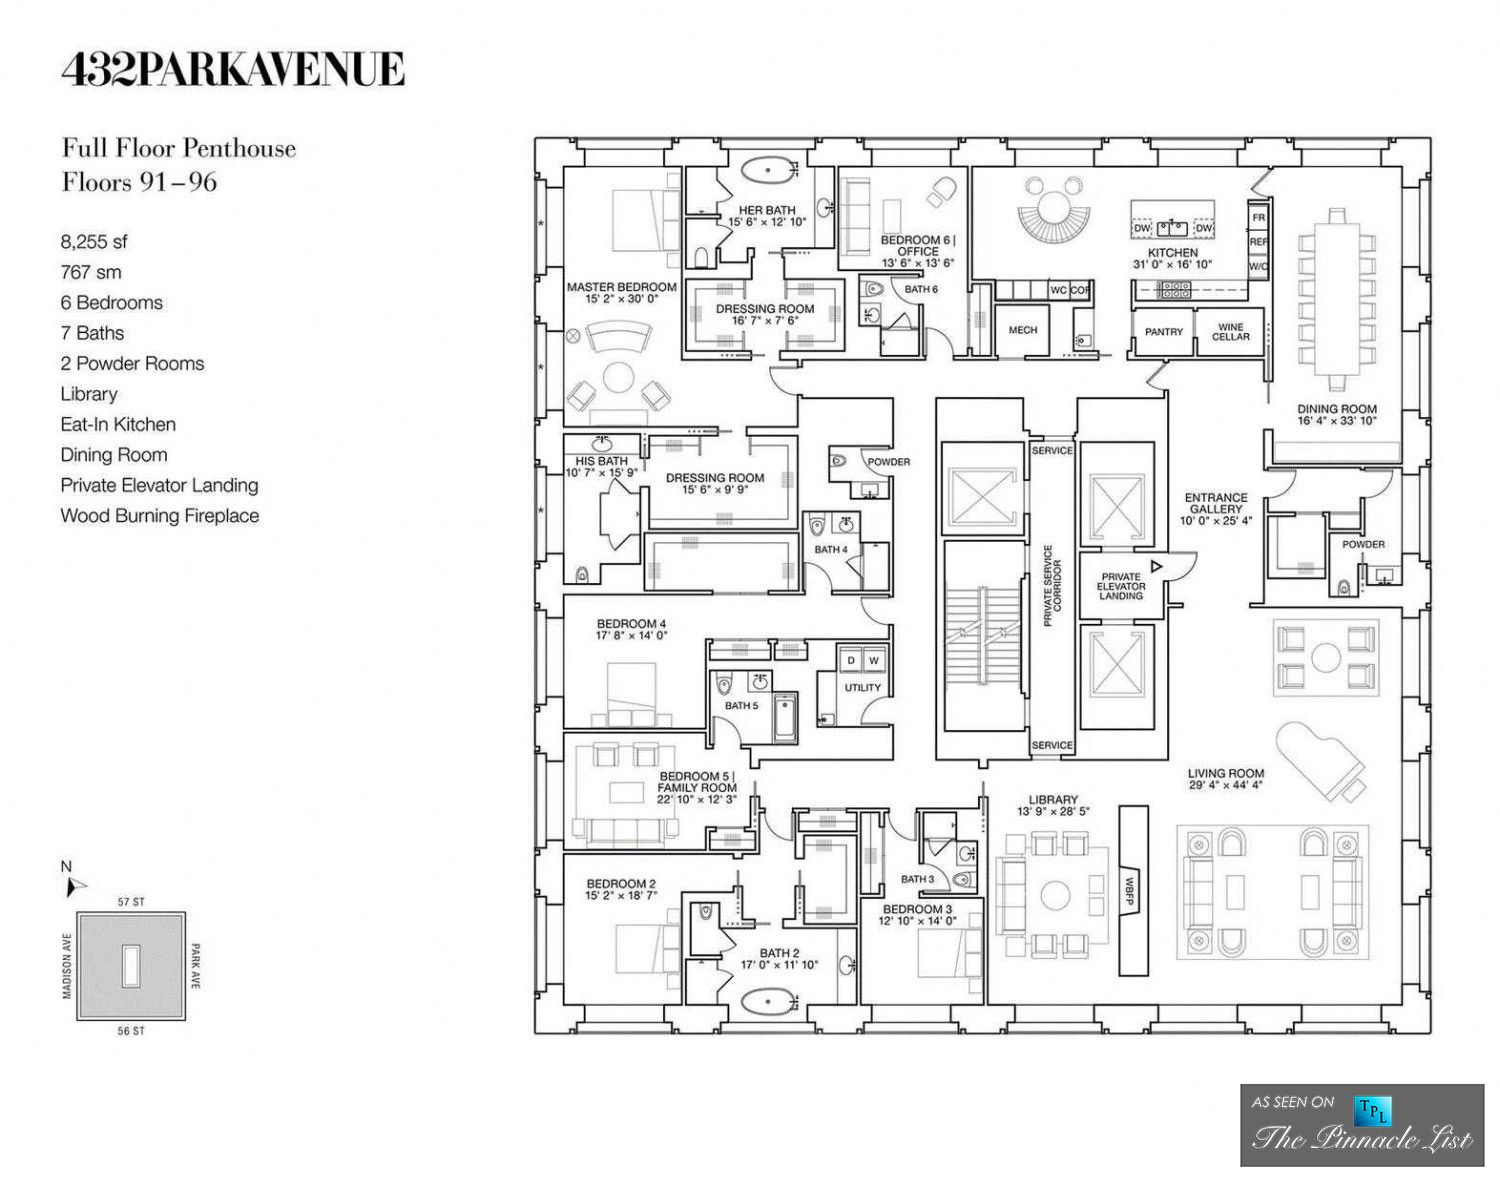 luxury penthouse floor plan ph92 432 park avenue new